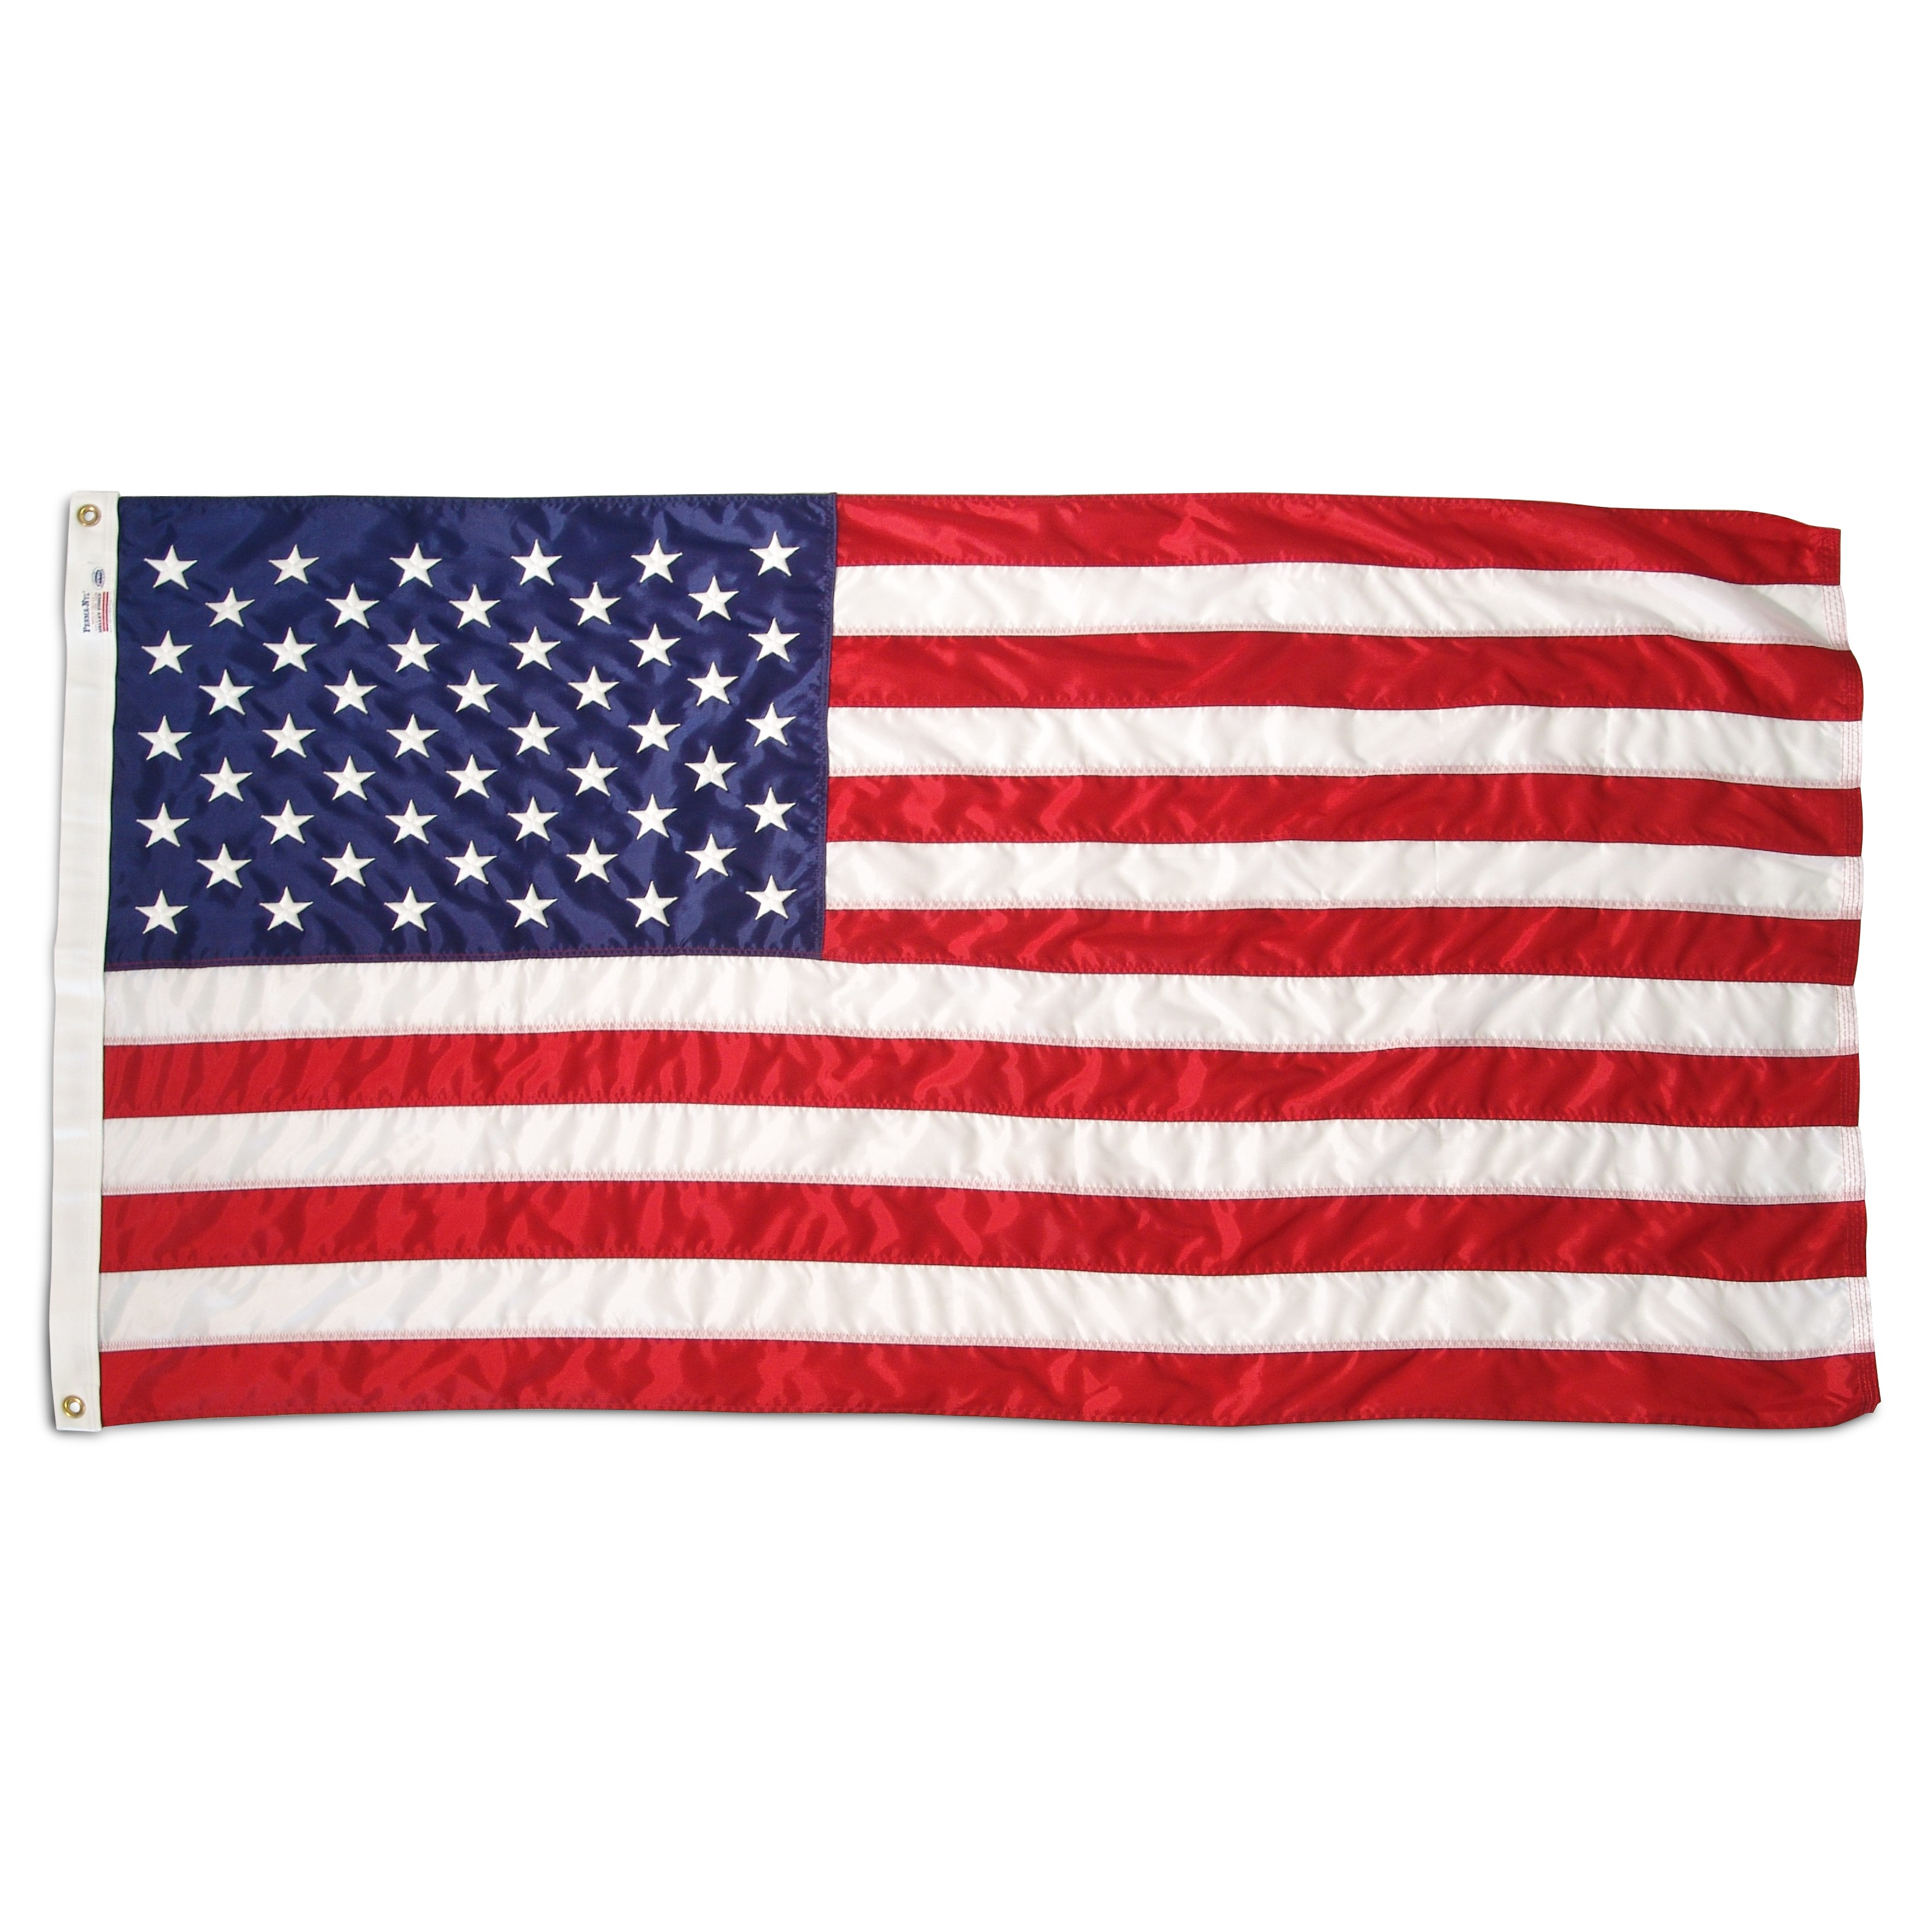 USA double printing ad flags banners event and hanging custom printed flag